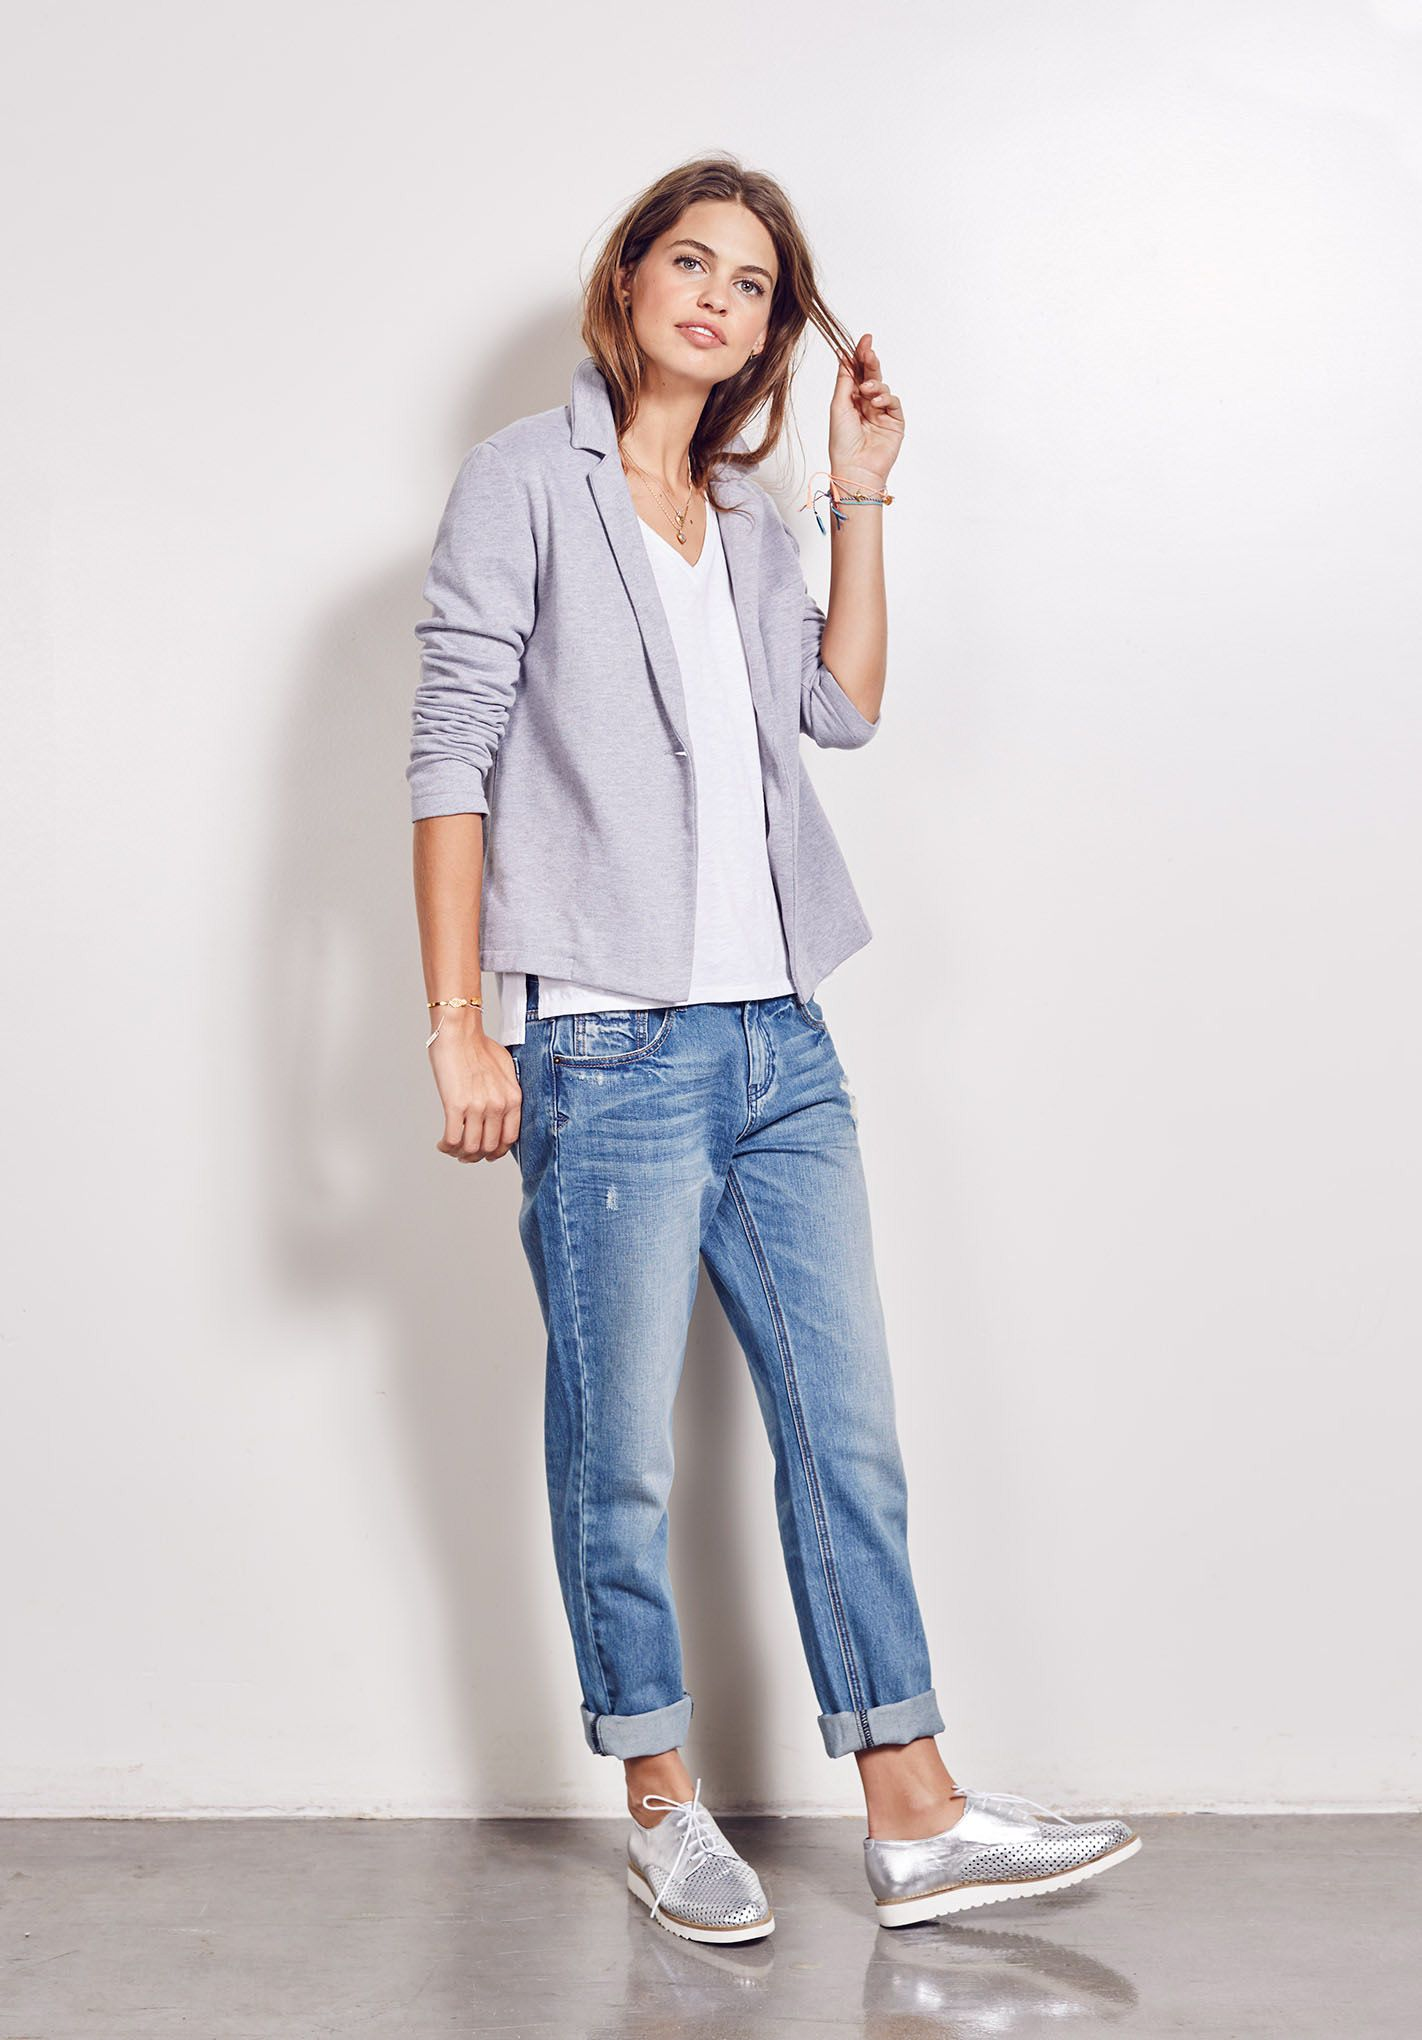 Taking A Look At Hush Ss15 Amp Wiwt Boyfriend Jeans